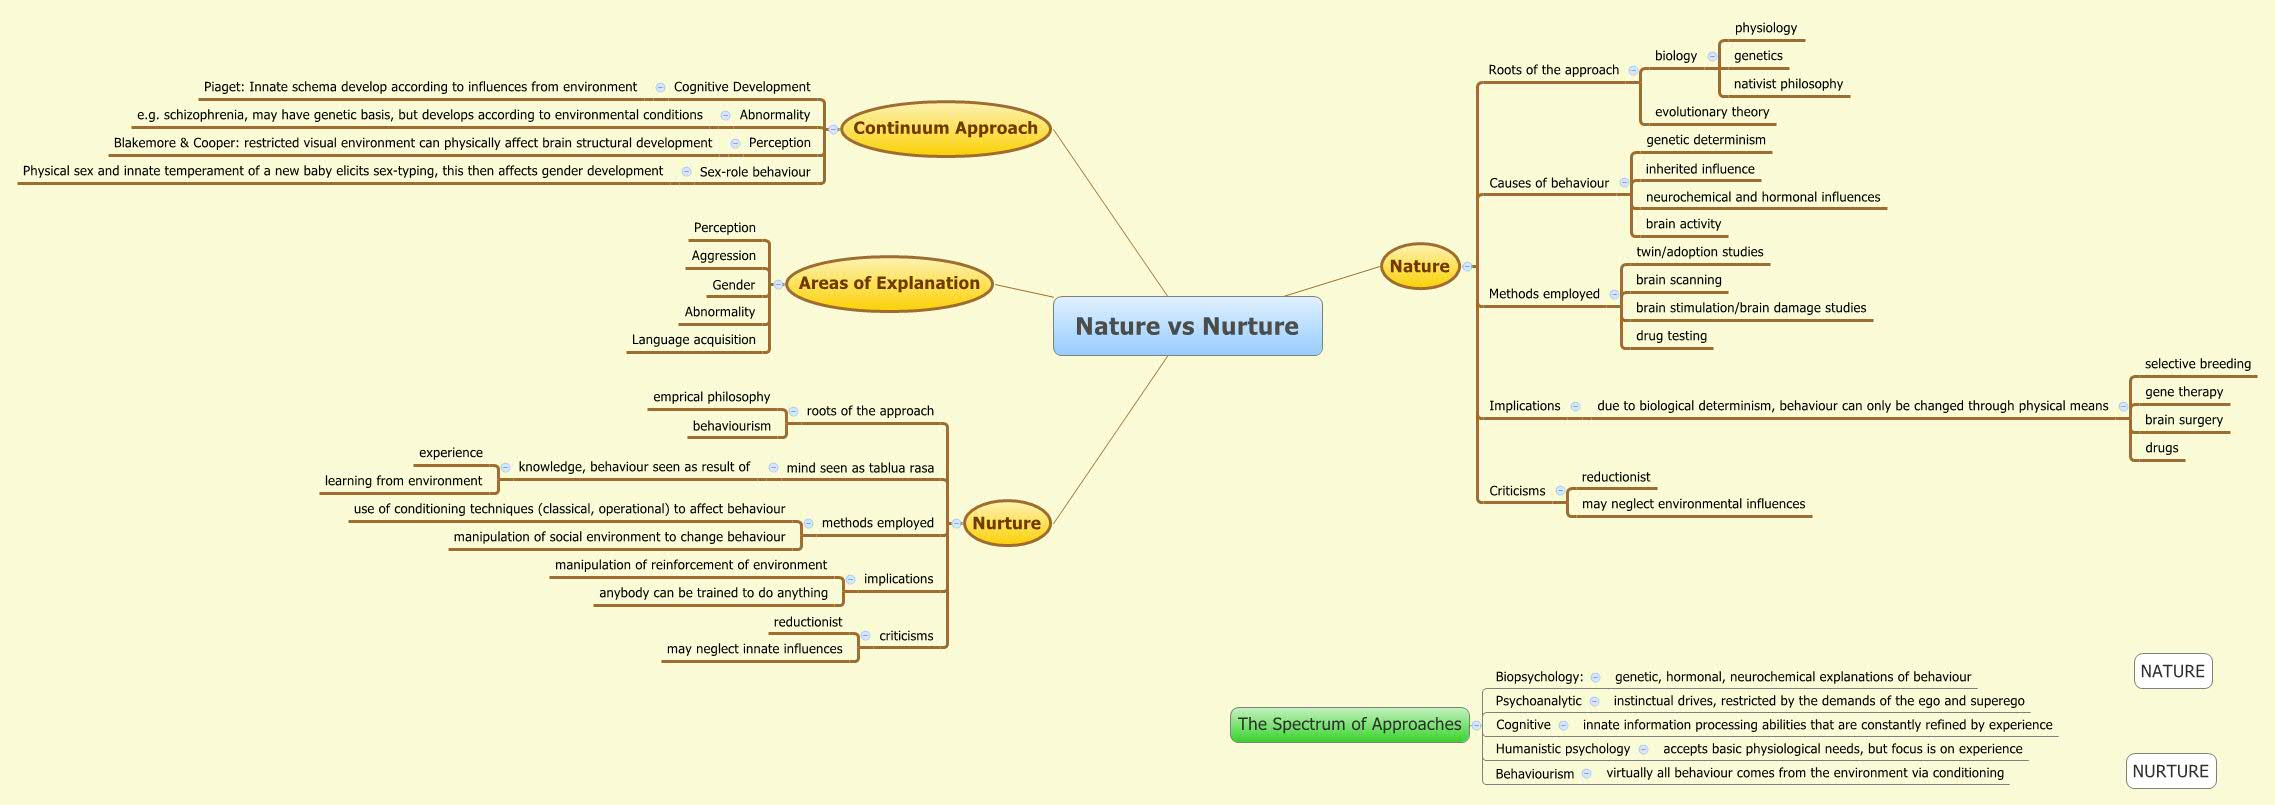 essay on nature vs nurture intelligence letters SlideShare